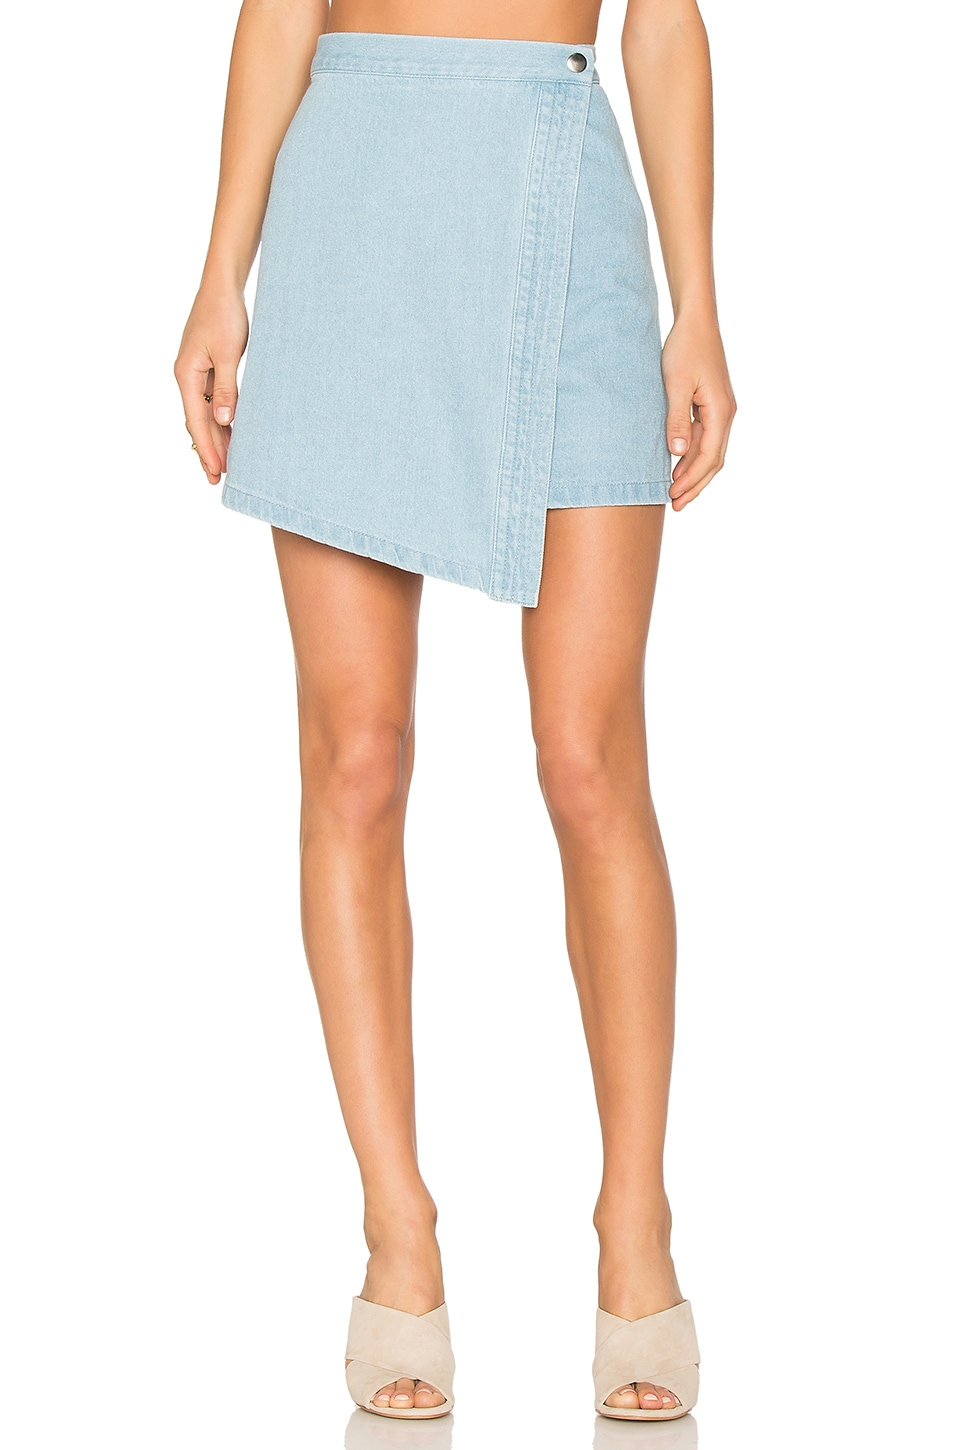 The Fifth Label Blue Eyes Skirt in Light Washed Denim